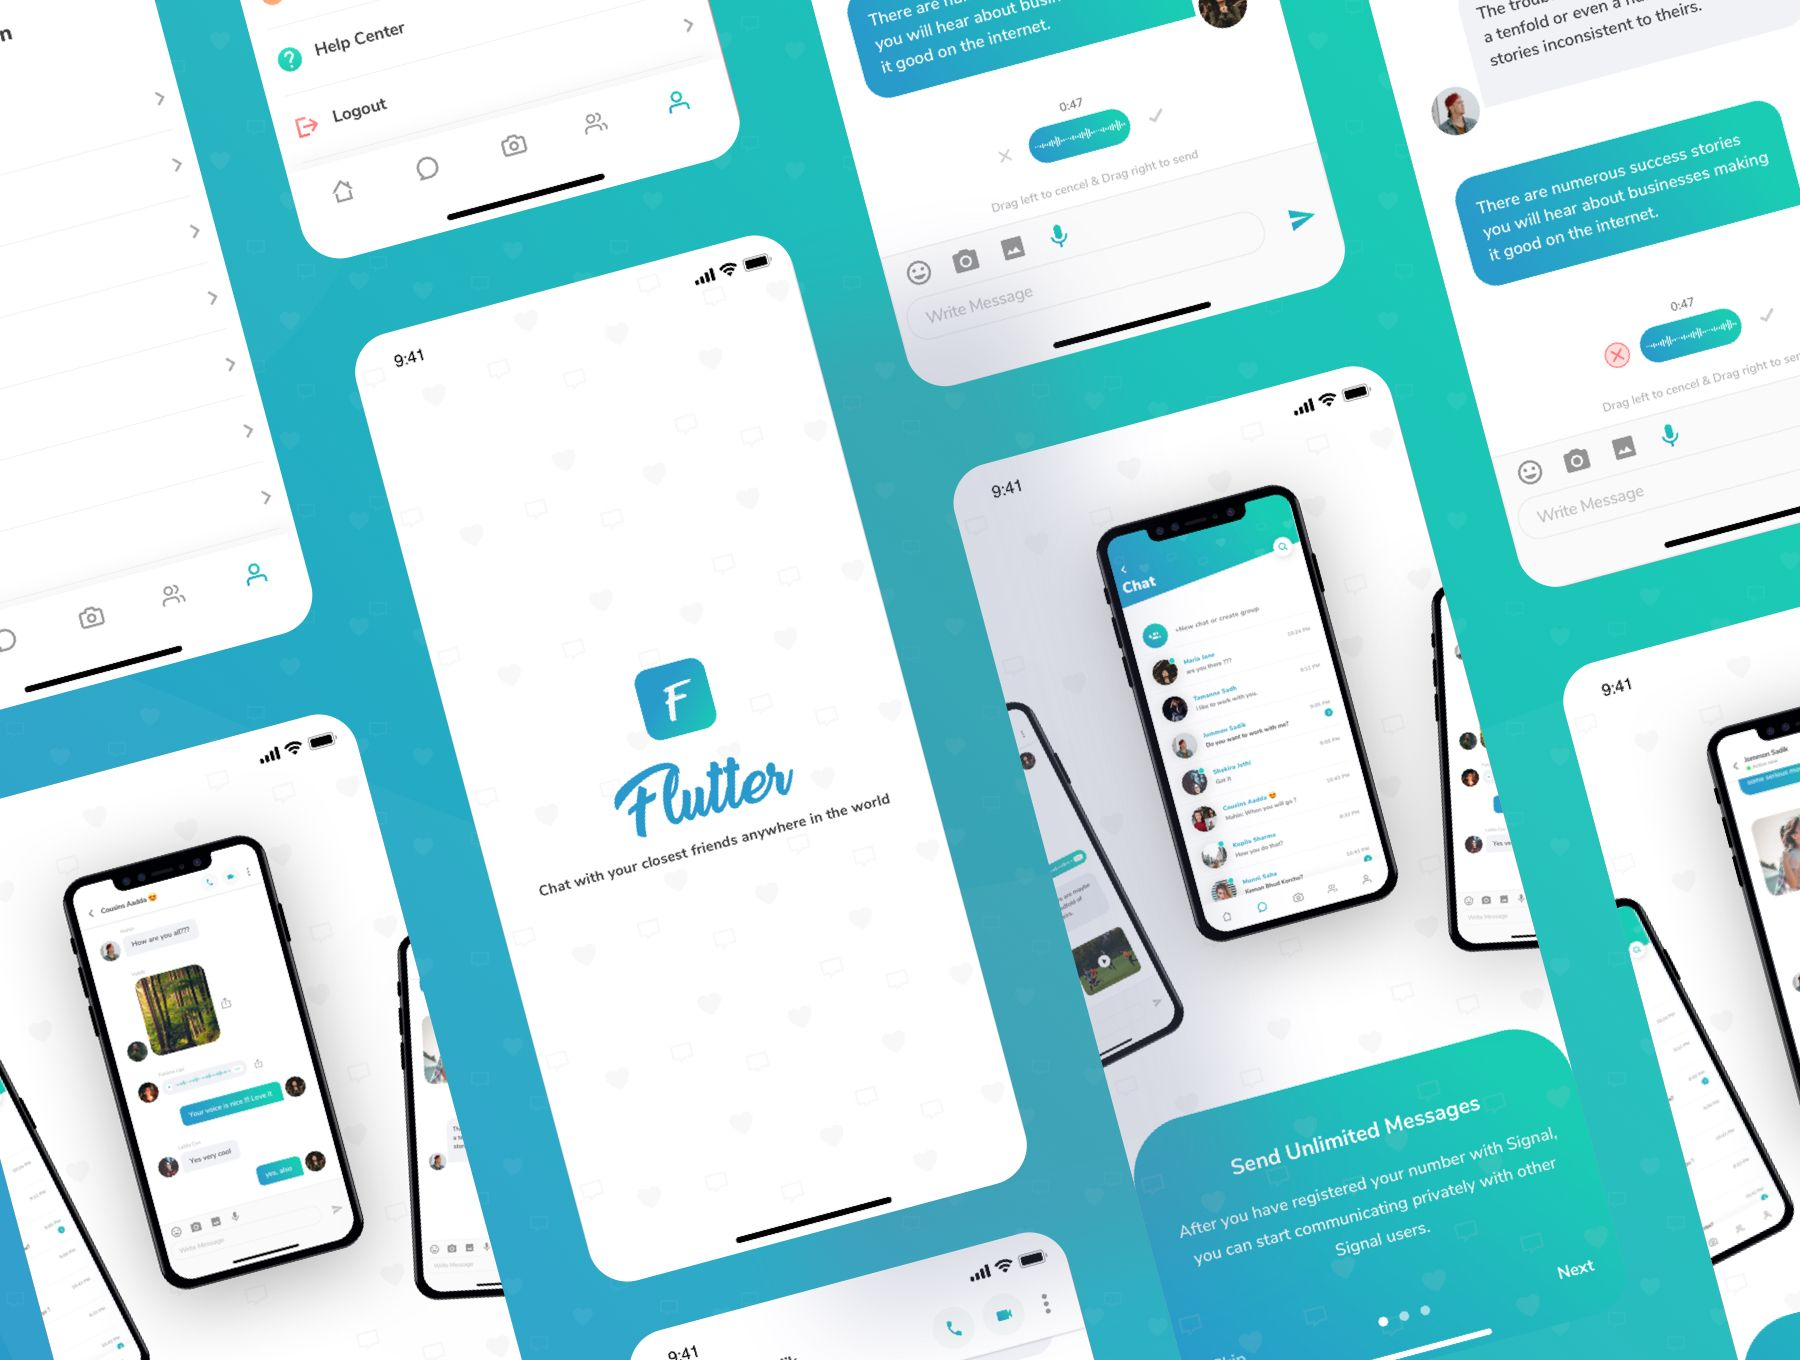 Flutter Messaging App UI Kit Chat with your closest friends anywhere